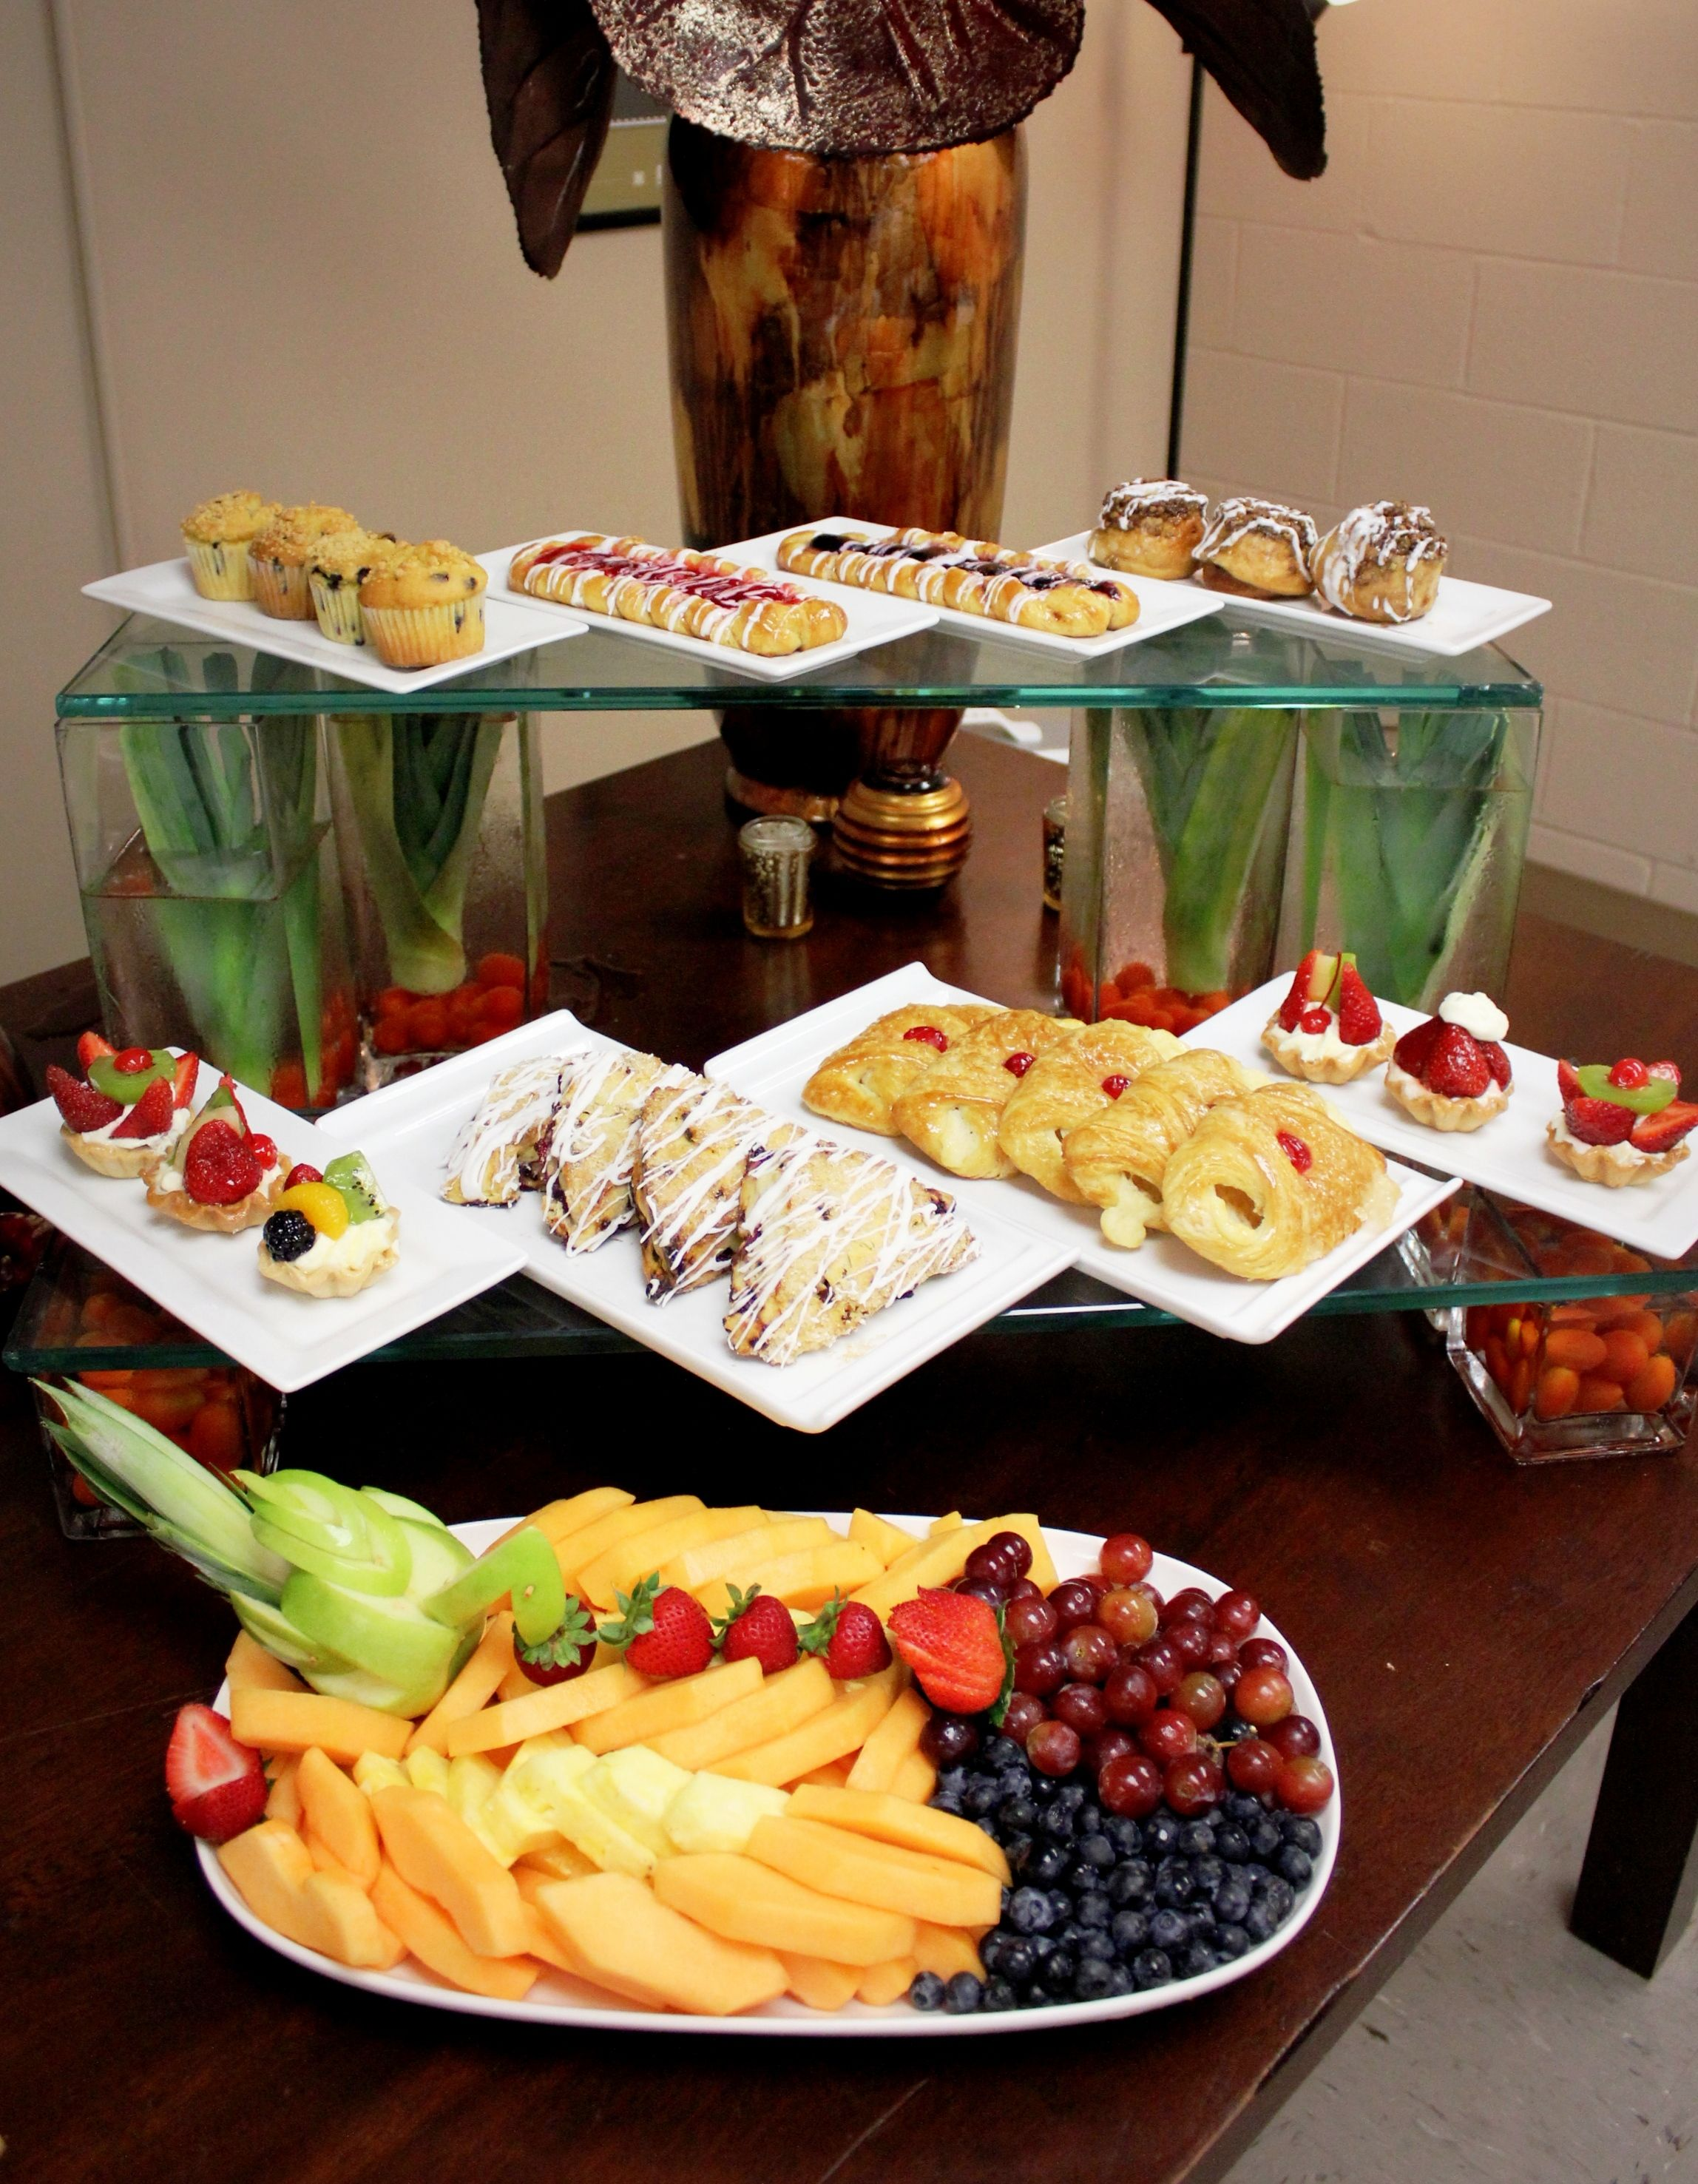 Continental Breakfast Display Muffins Danish Caramel Roll Fruit Tart Scones Cheese Croissant Breakfast Buffet Breakfast Catering Breakfast Buffet Table